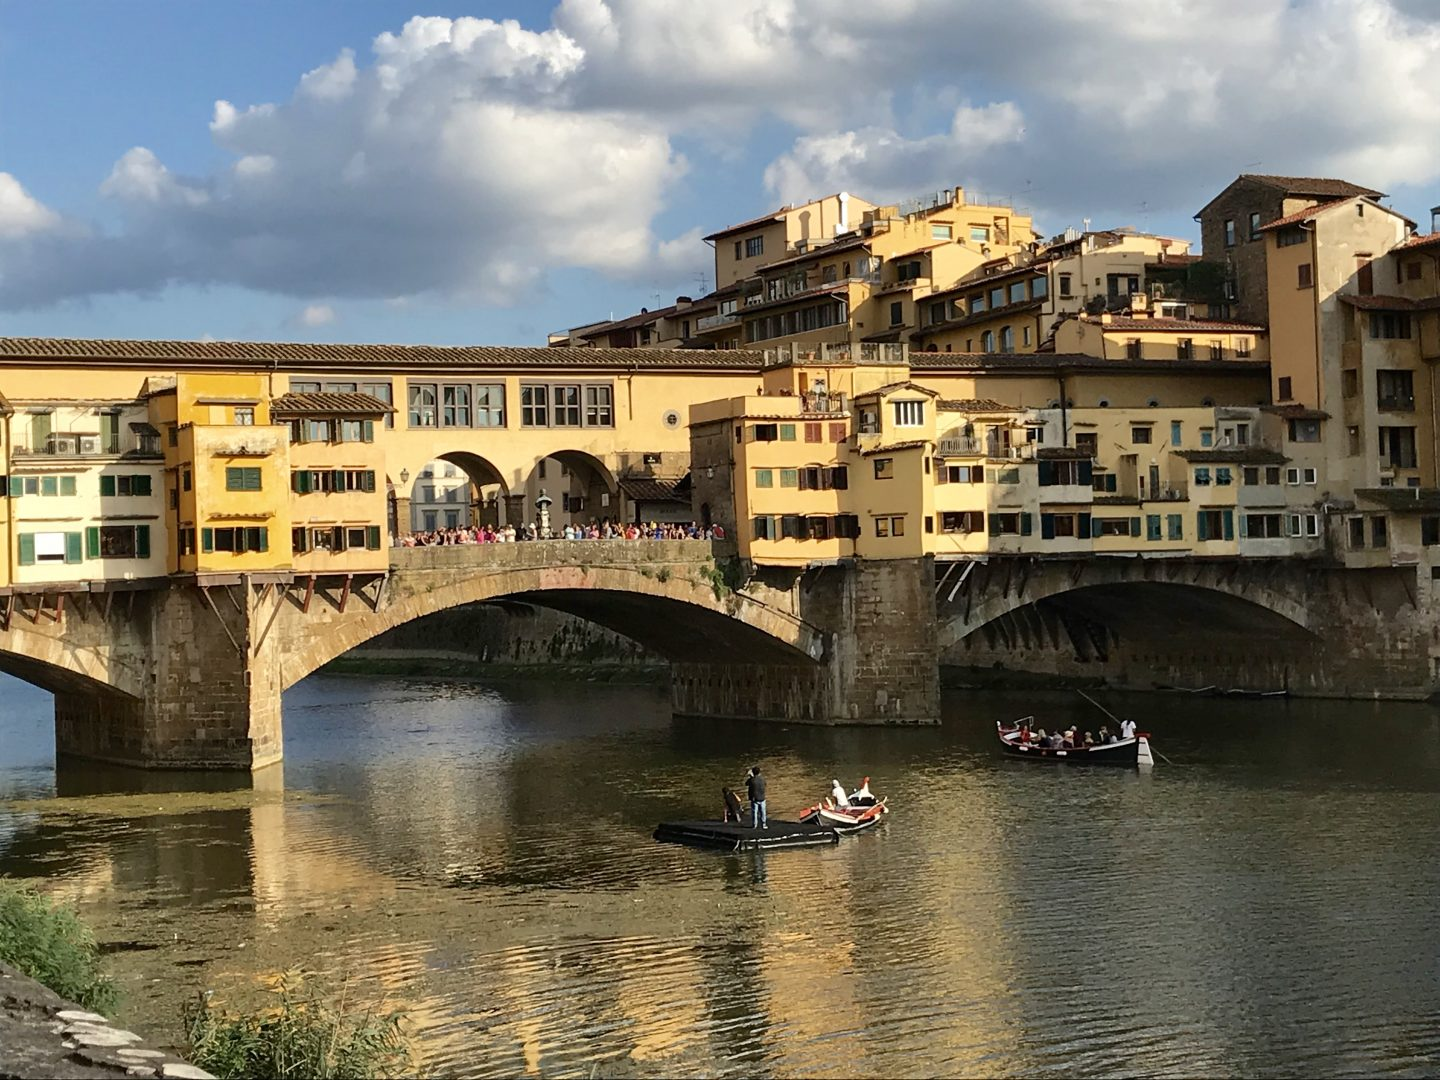 Italy on my mind (the Florence guide)